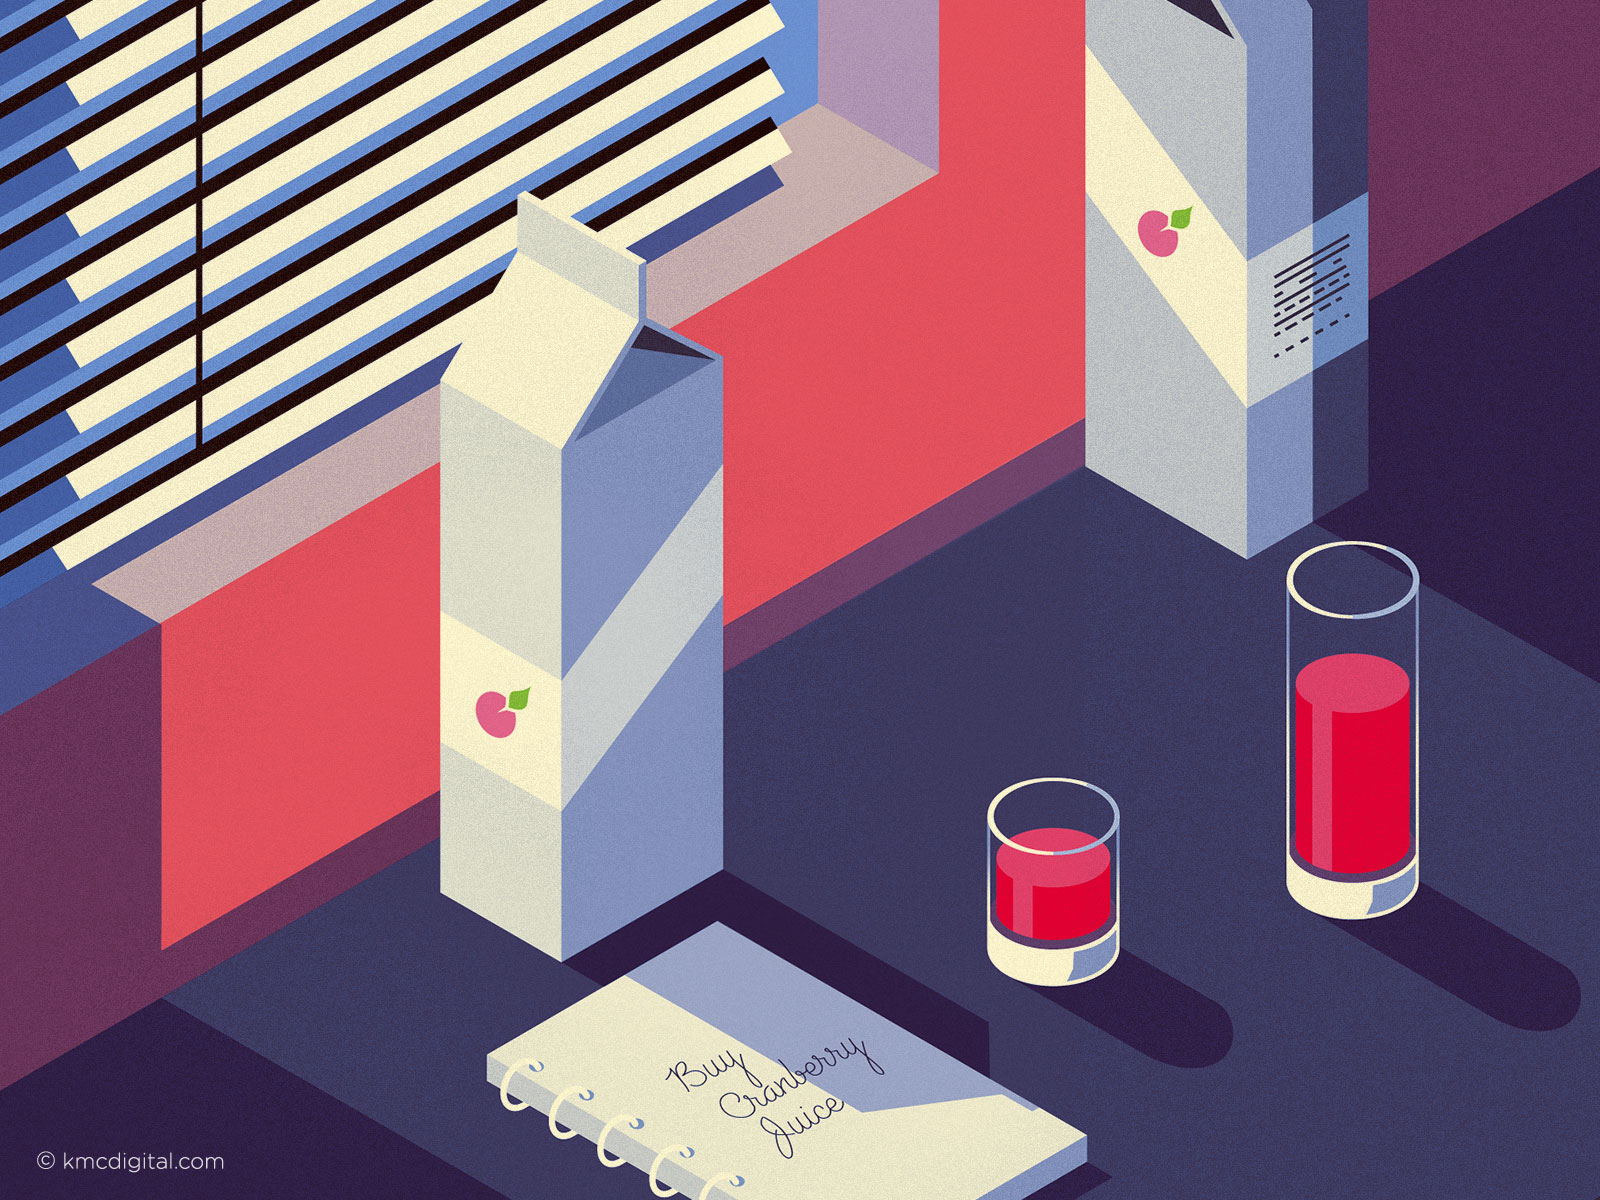 Cranberry Juice Illustration vignette